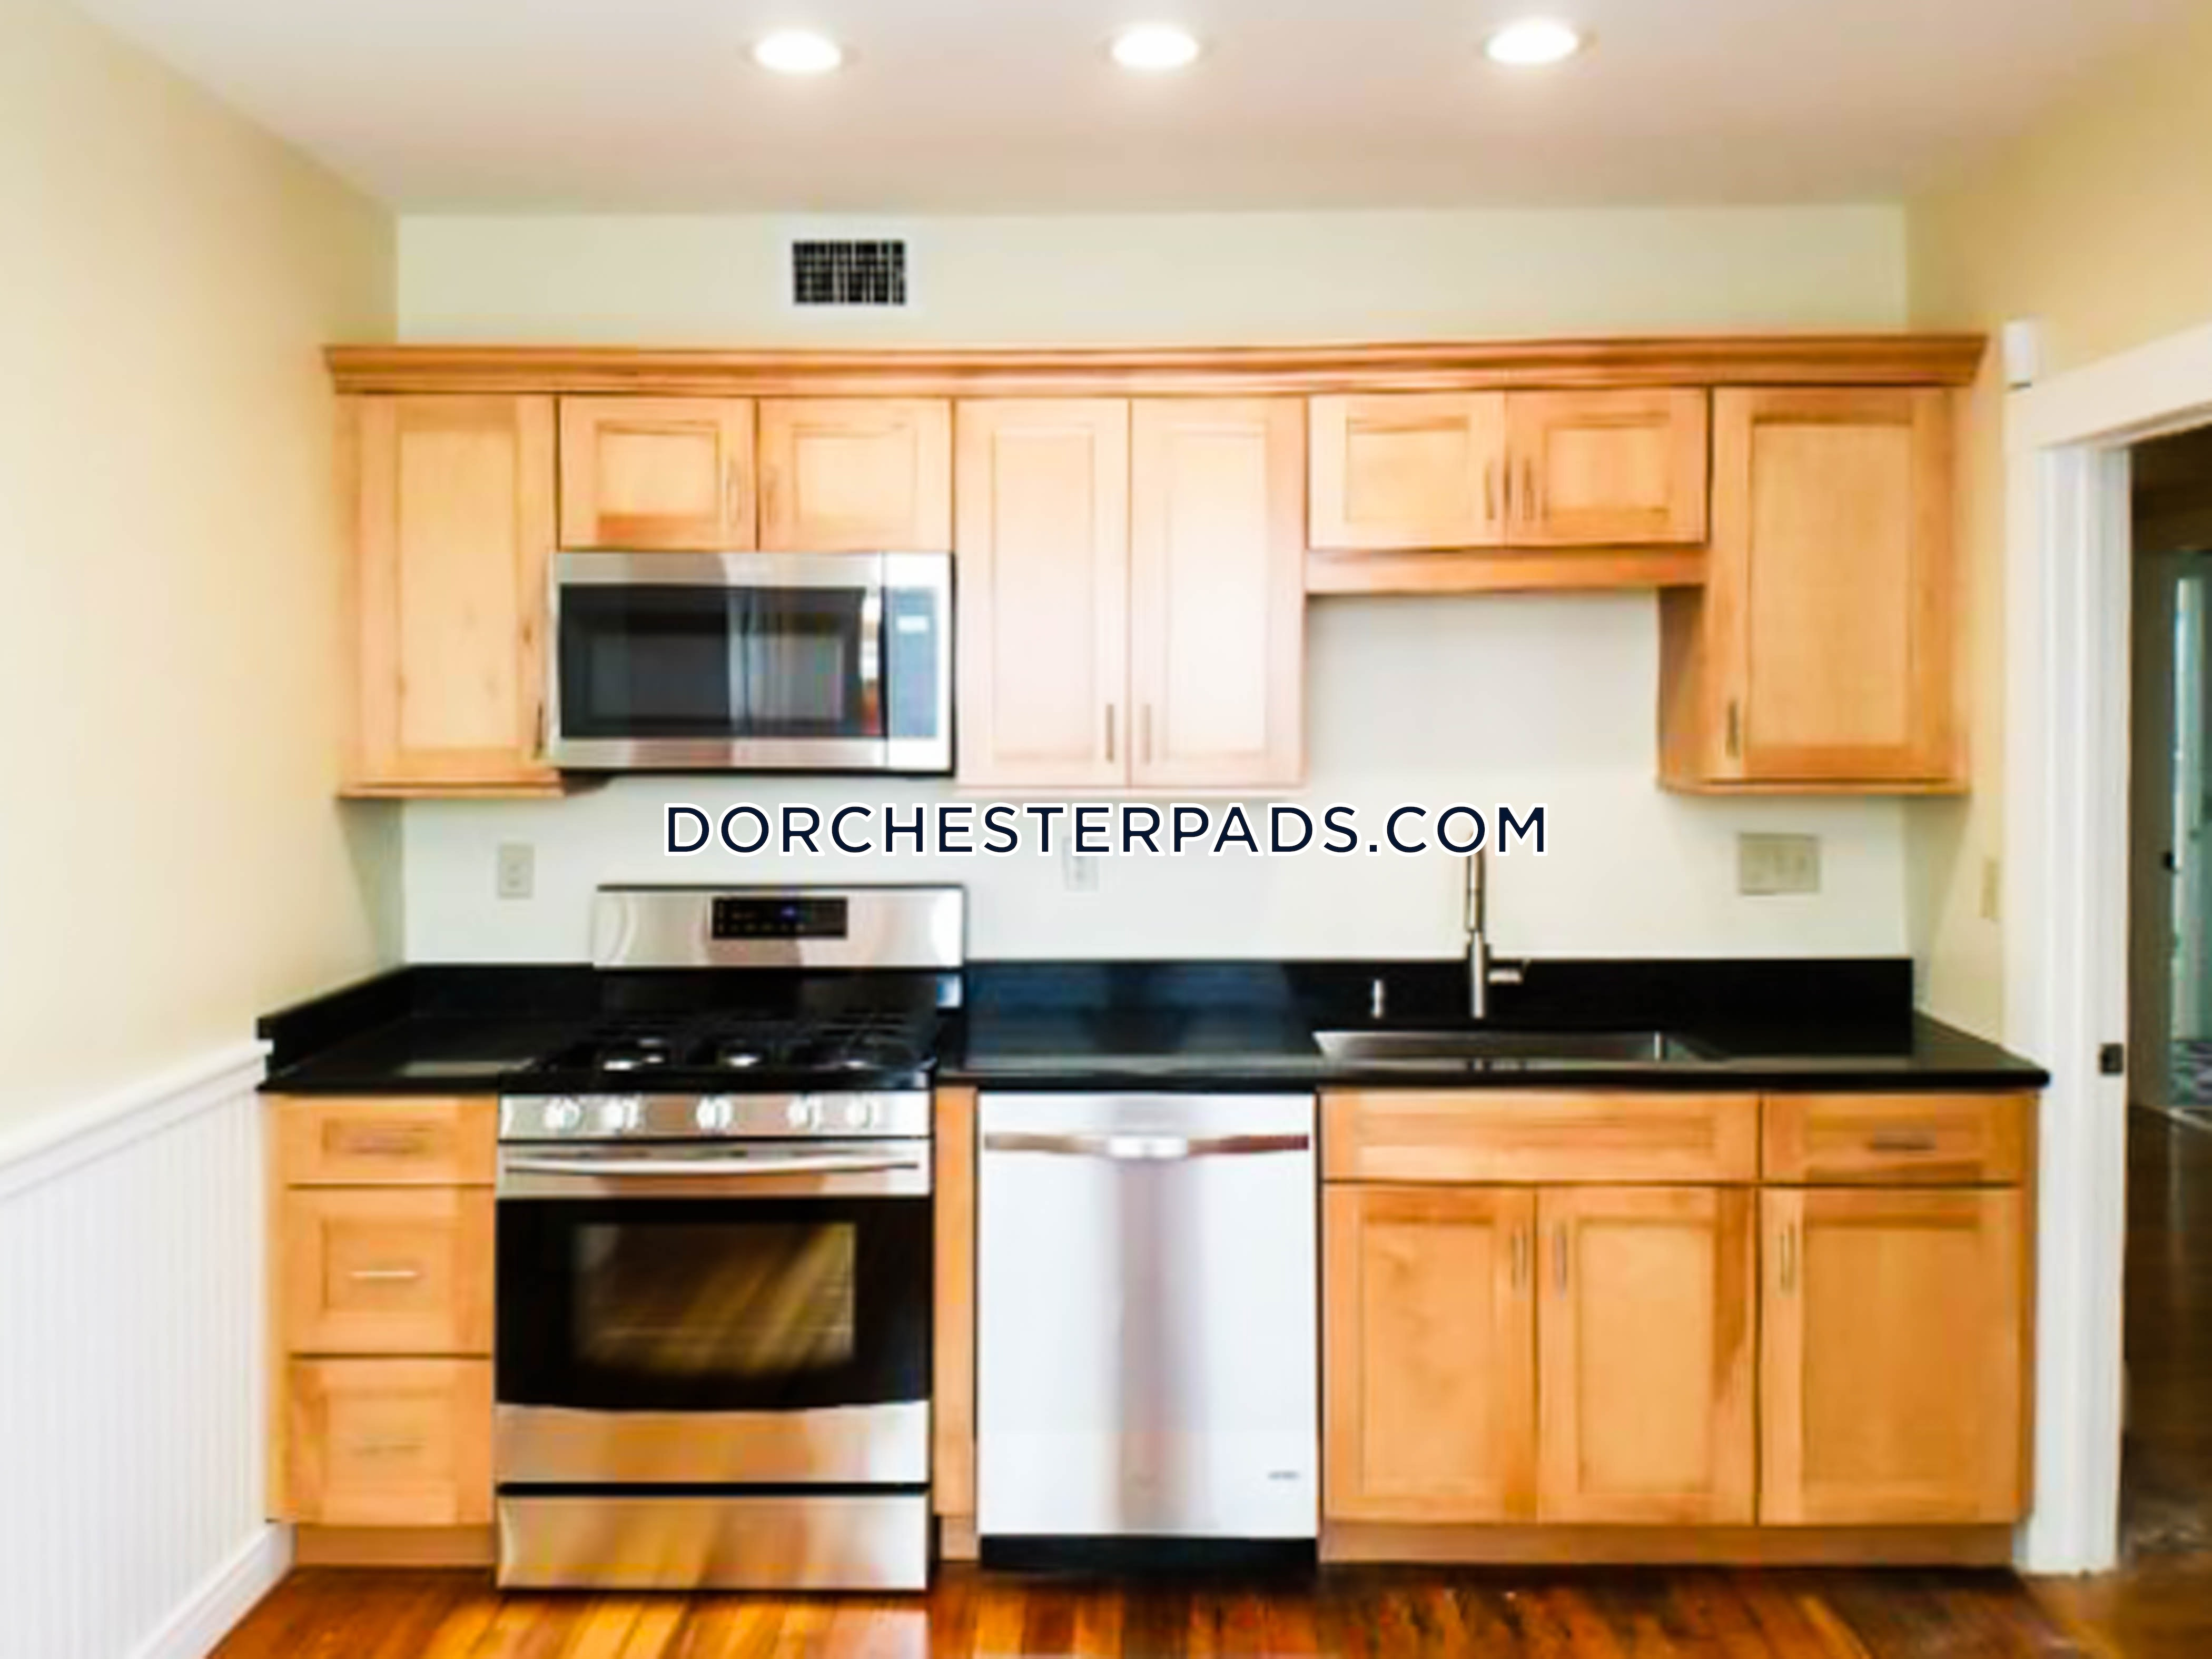 4 Beds 2 Baths - Boston - Dorchester - Grove Hall $3,000